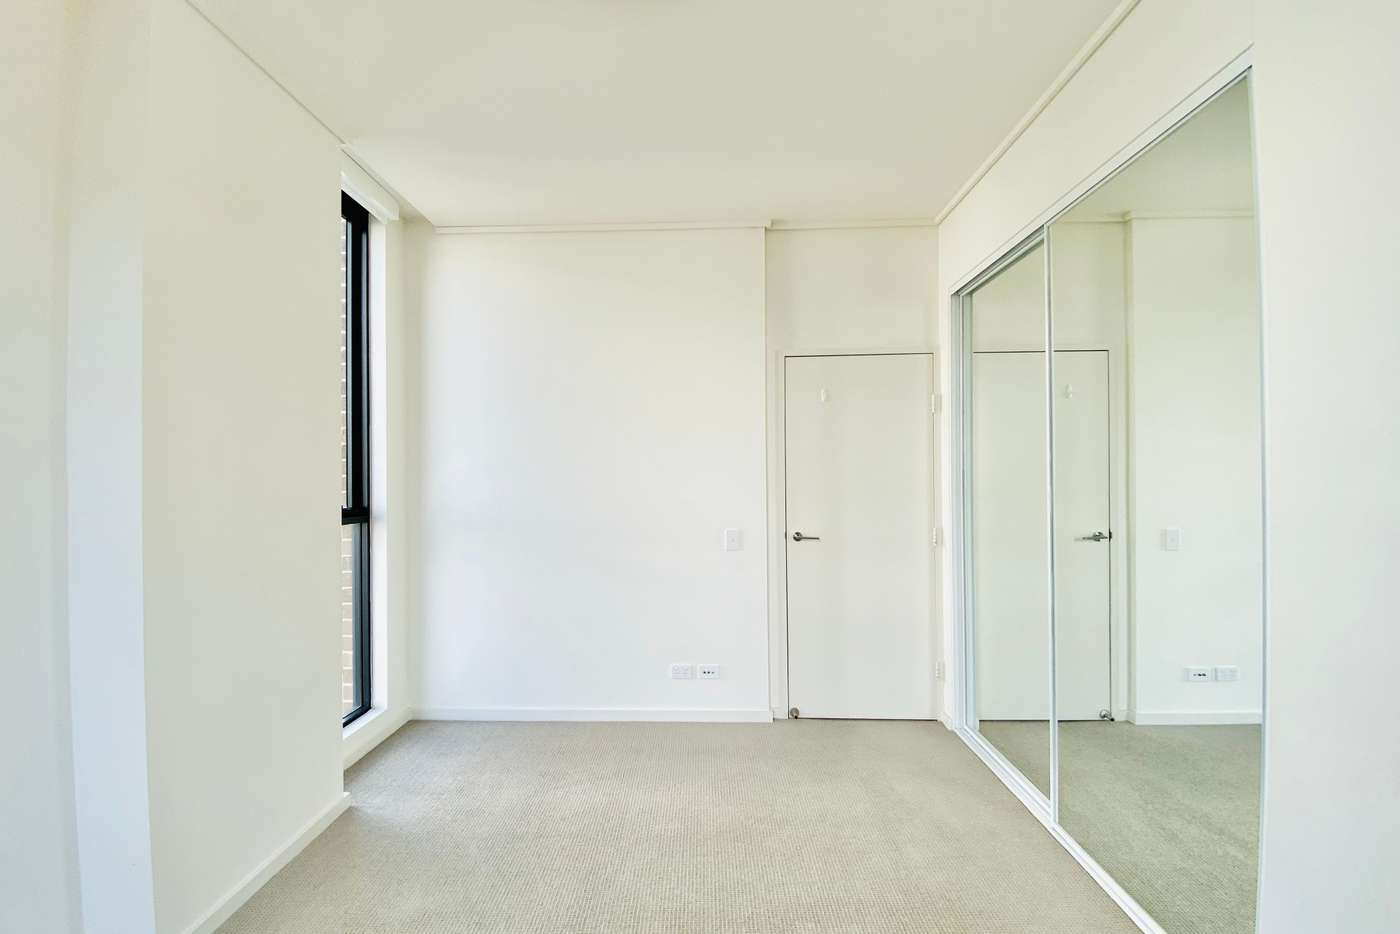 Seventh view of Homely apartment listing, 502/7 Washington Avenue, Riverwood NSW 2210